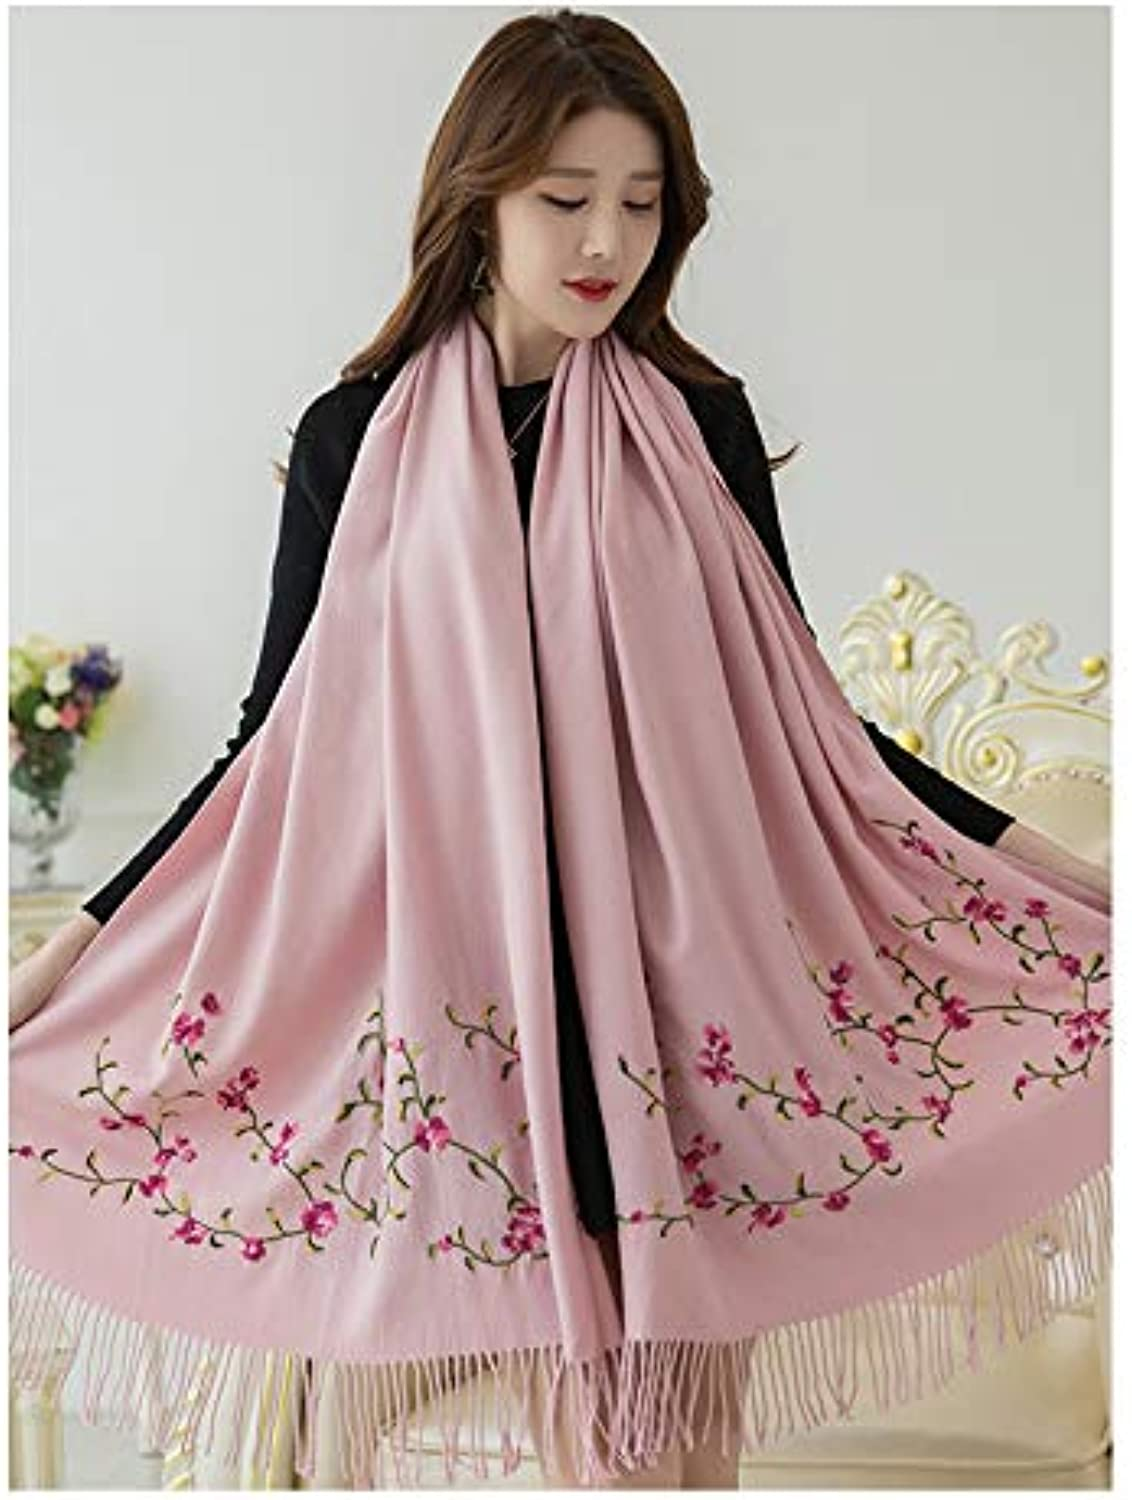 JINGB Home Embroidered Scarf Female Autumn and Winter Long Paragraph Versatile air Conditioning Shawl Dualuse Thick Winter Warm (color   Pink)